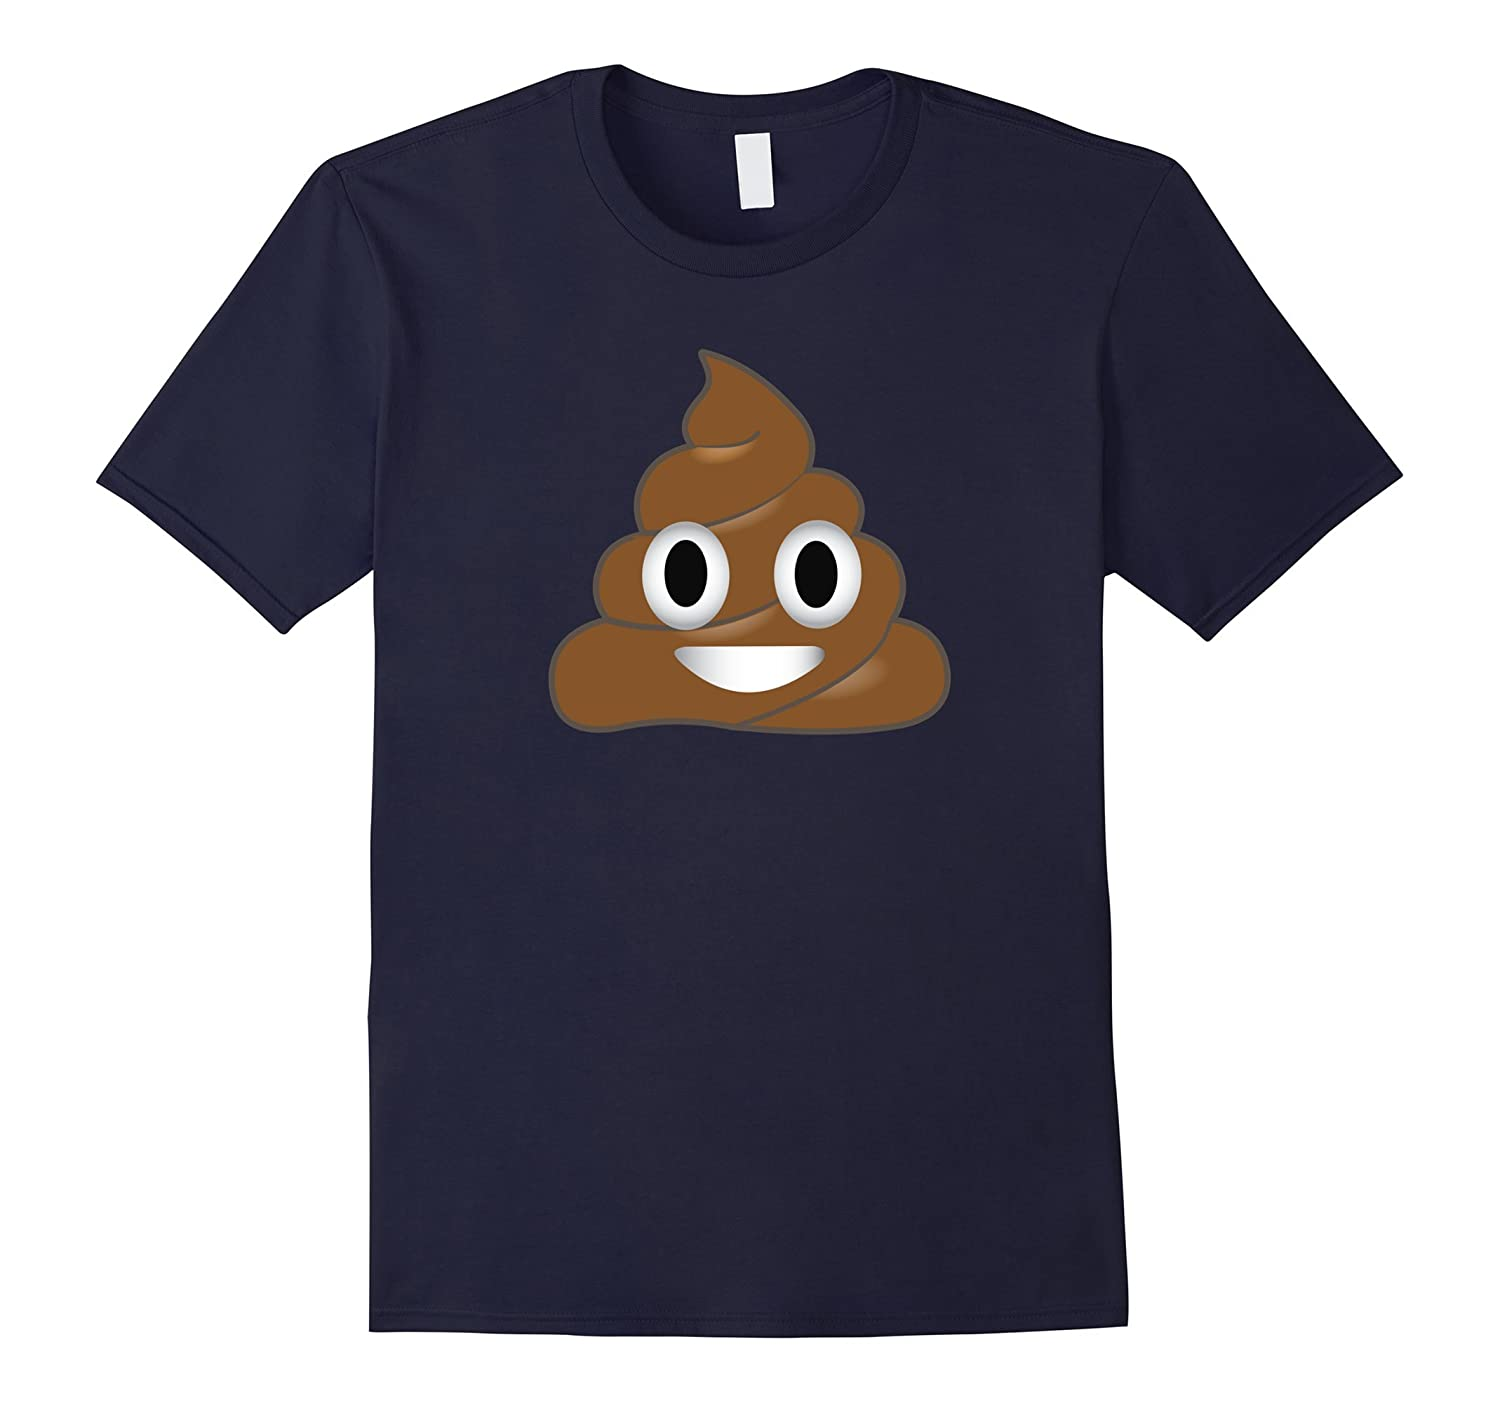 Emoji Poop Shirt ~ Novelty Funny t-shirt for Men Women Kids-BN